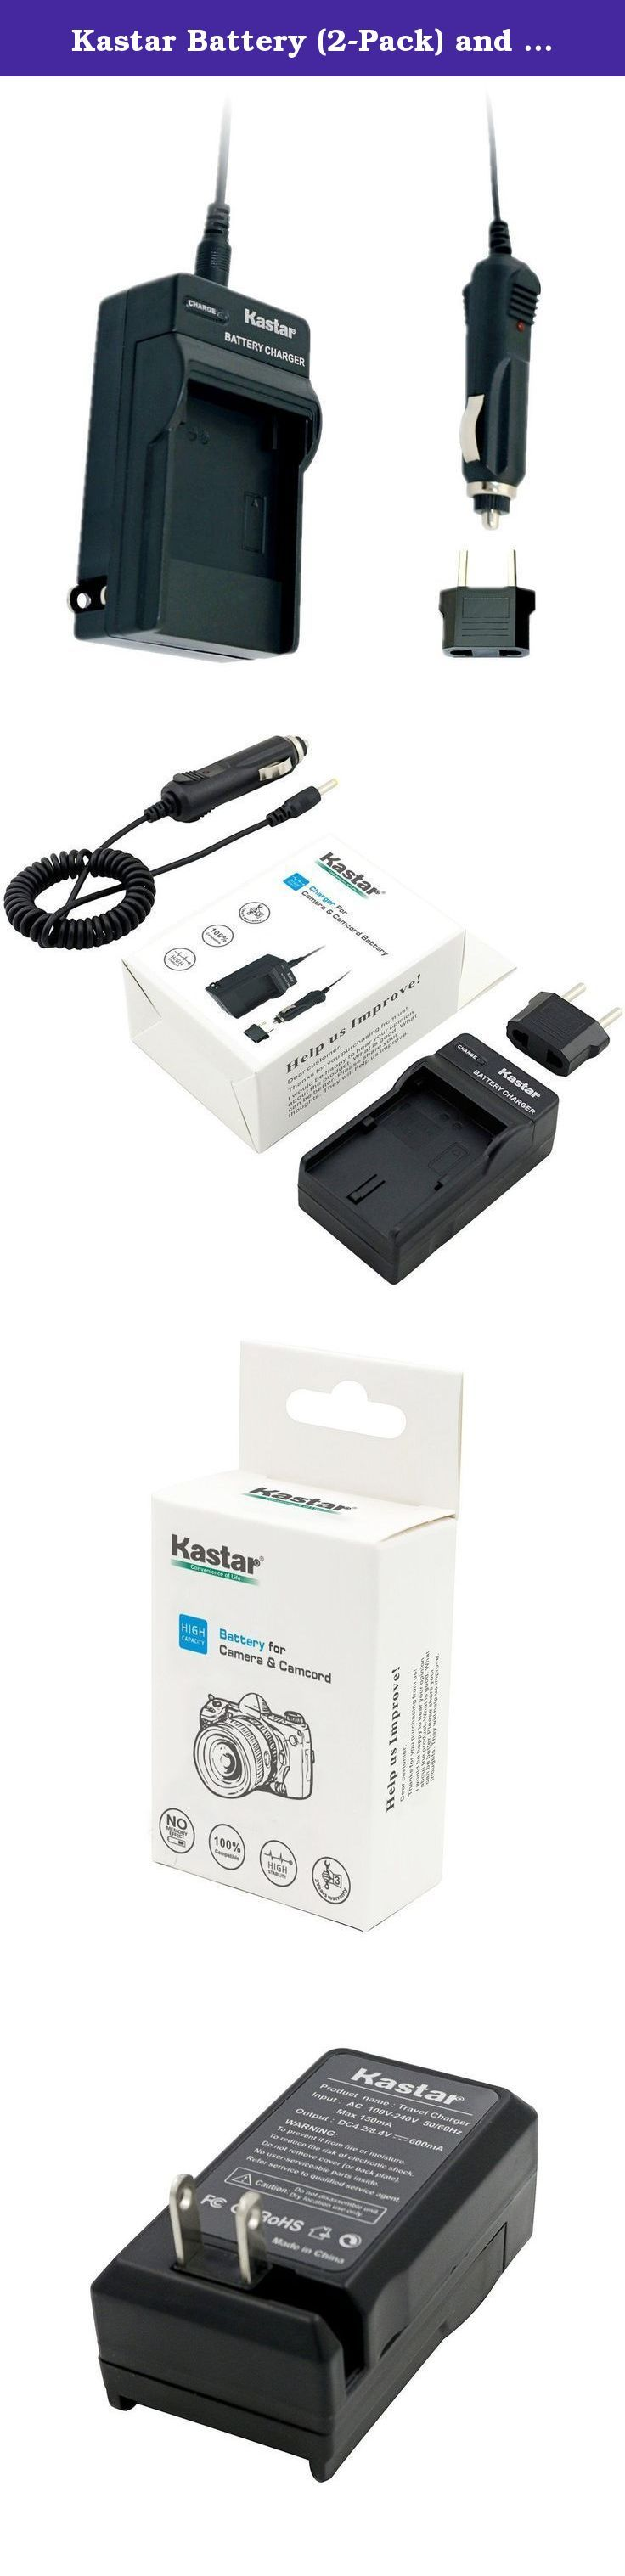 Kastar Battery (2-Pack) and Charger Kit for Canon LP-E10, LC-E10 work with Canon EOS Rebel T5, EOS Rebel T3, EOS Kiss X50, EOS Kiss X70, EOS 1200D, EOS 1100D DSLR Cameras. Package Includes: 2 x Canon LP-E10 Battery 1 x Travel Charger 1 x Car Charger 1 x European Plug Battery Compatible: Canon LP-E10 Charger Compatible: Canon LC-E10 Compatible with the following models: Canon EOS 1100D Canon EOS 1200D Canon EOS Rebel T3 Canon EOS Rebel T5 Canon EOS Kiss X50 Canon EOS Kiss X70.